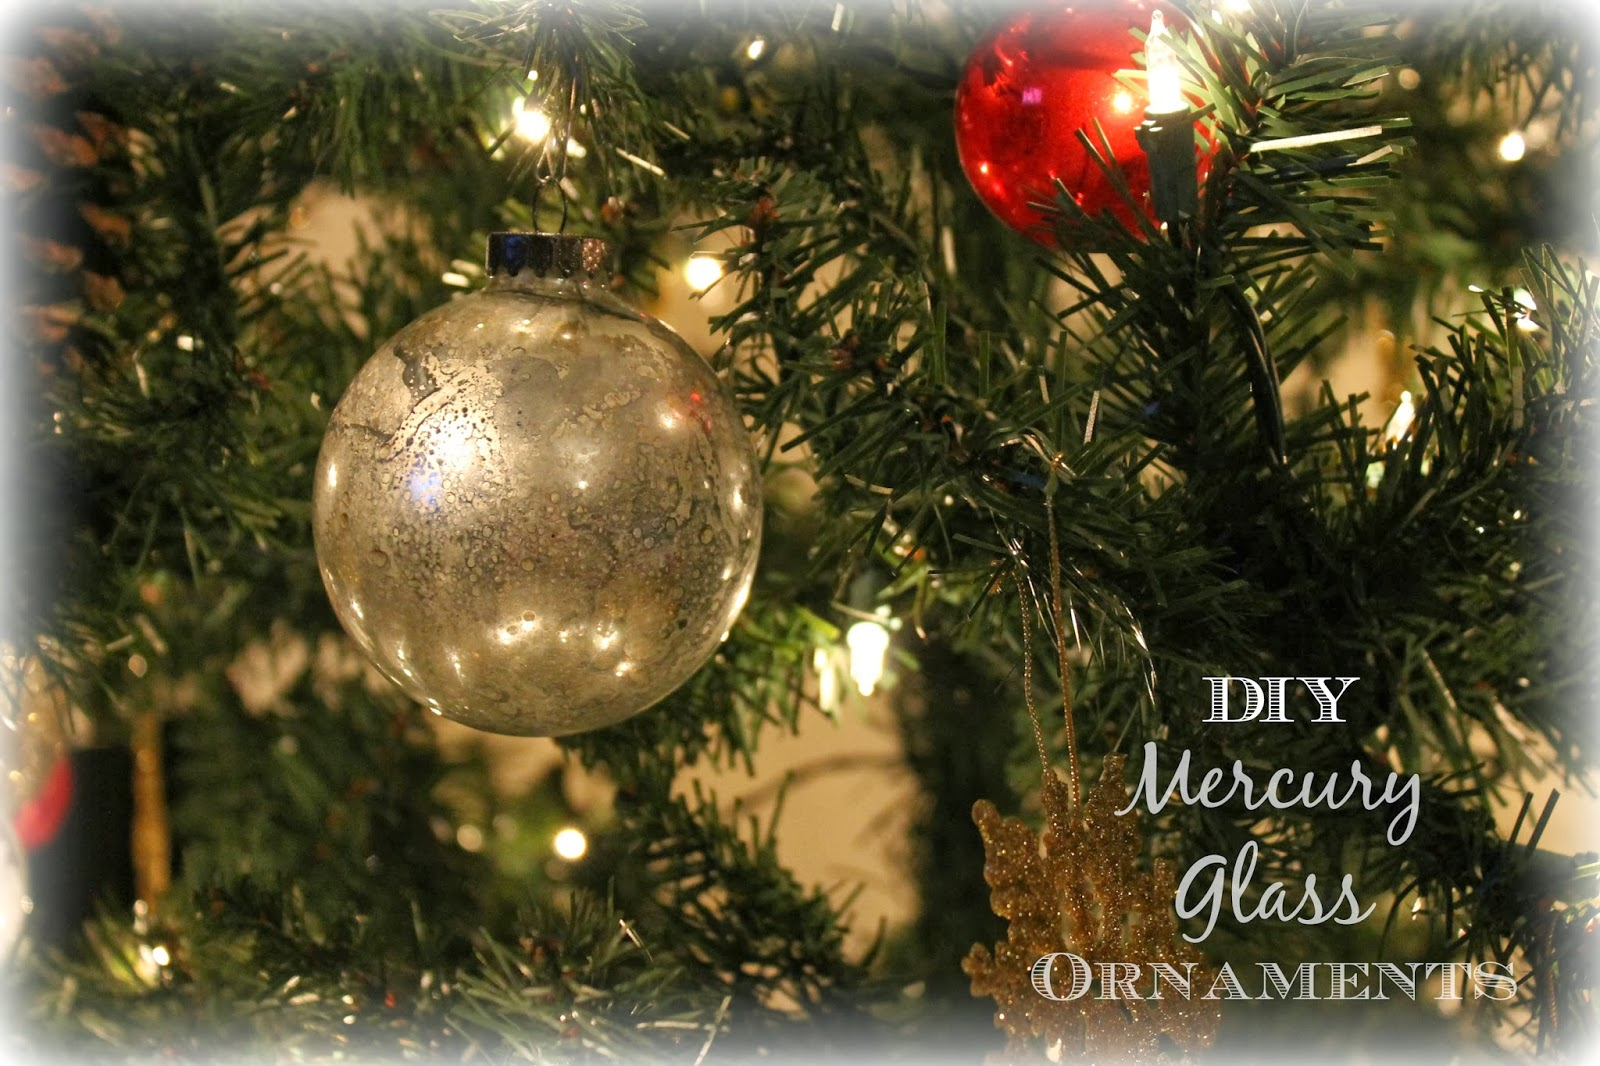 Diy mercury christmas ornaments - If You Want To Make Your Own Mercury Glass Ornaments You Will Need